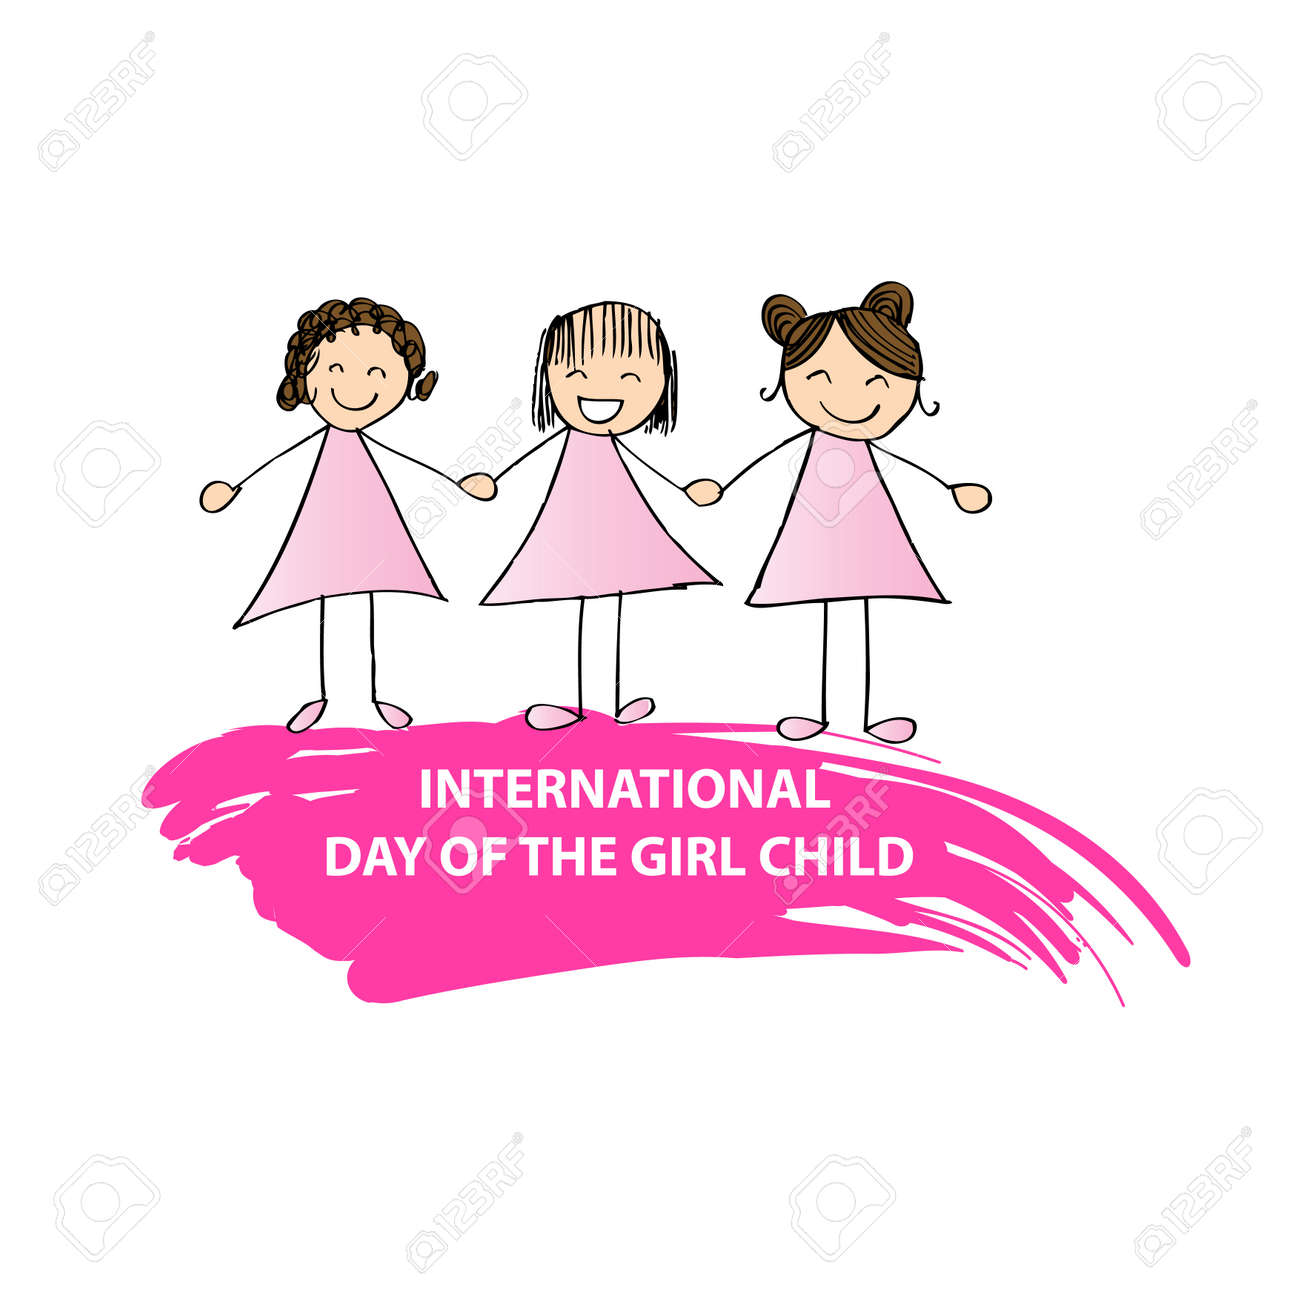 International Day of the Girl: How to get involved pictures